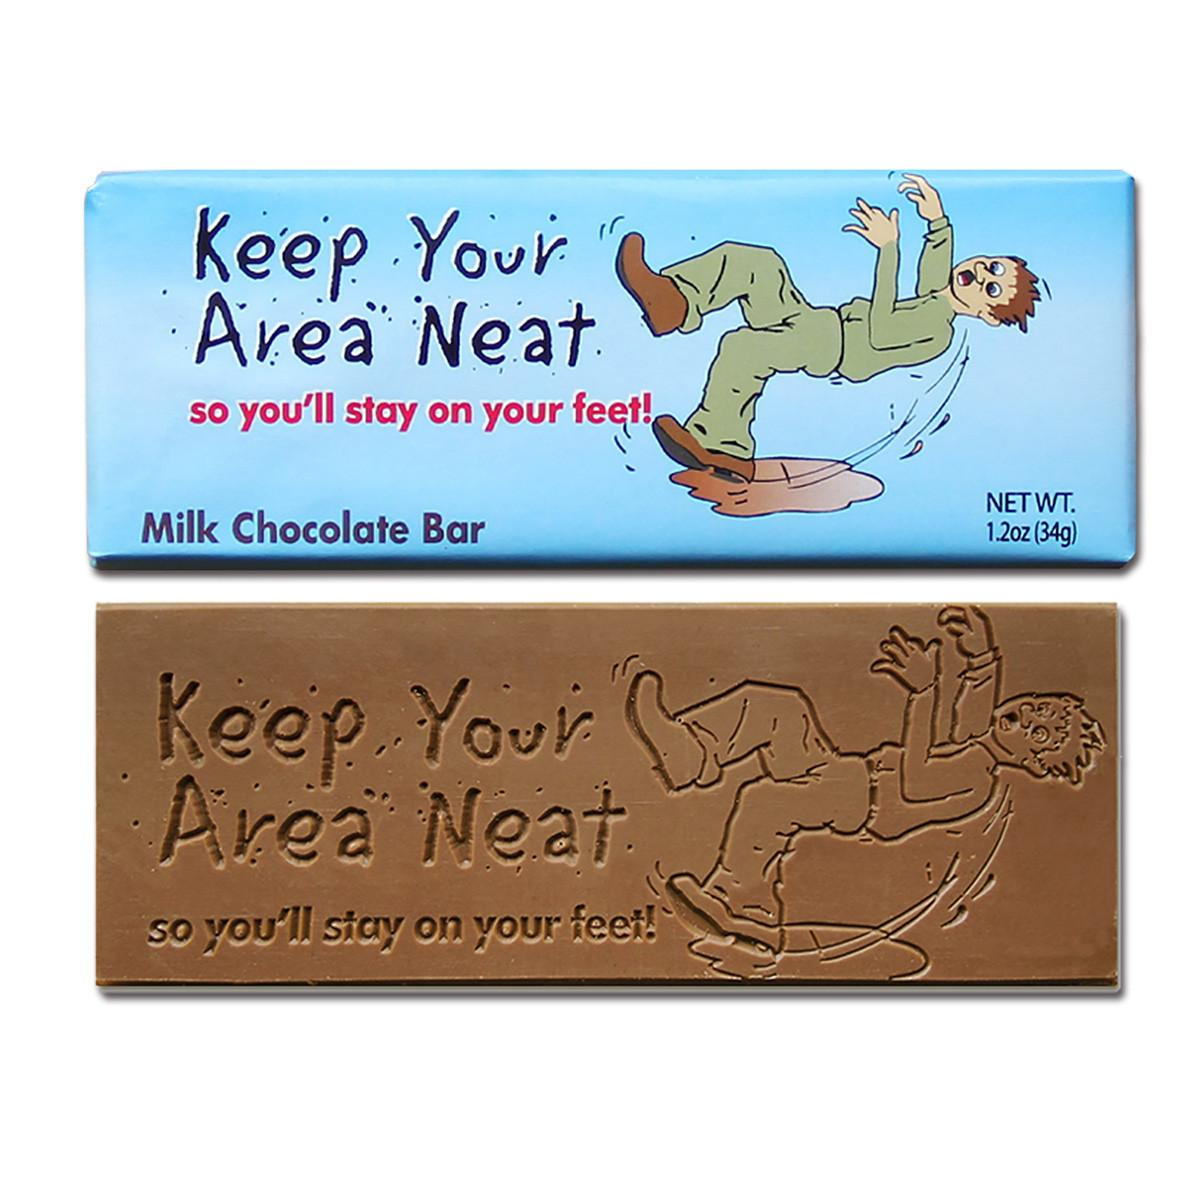 Keep Your Area Neat Milk Chocolate Bar Totally